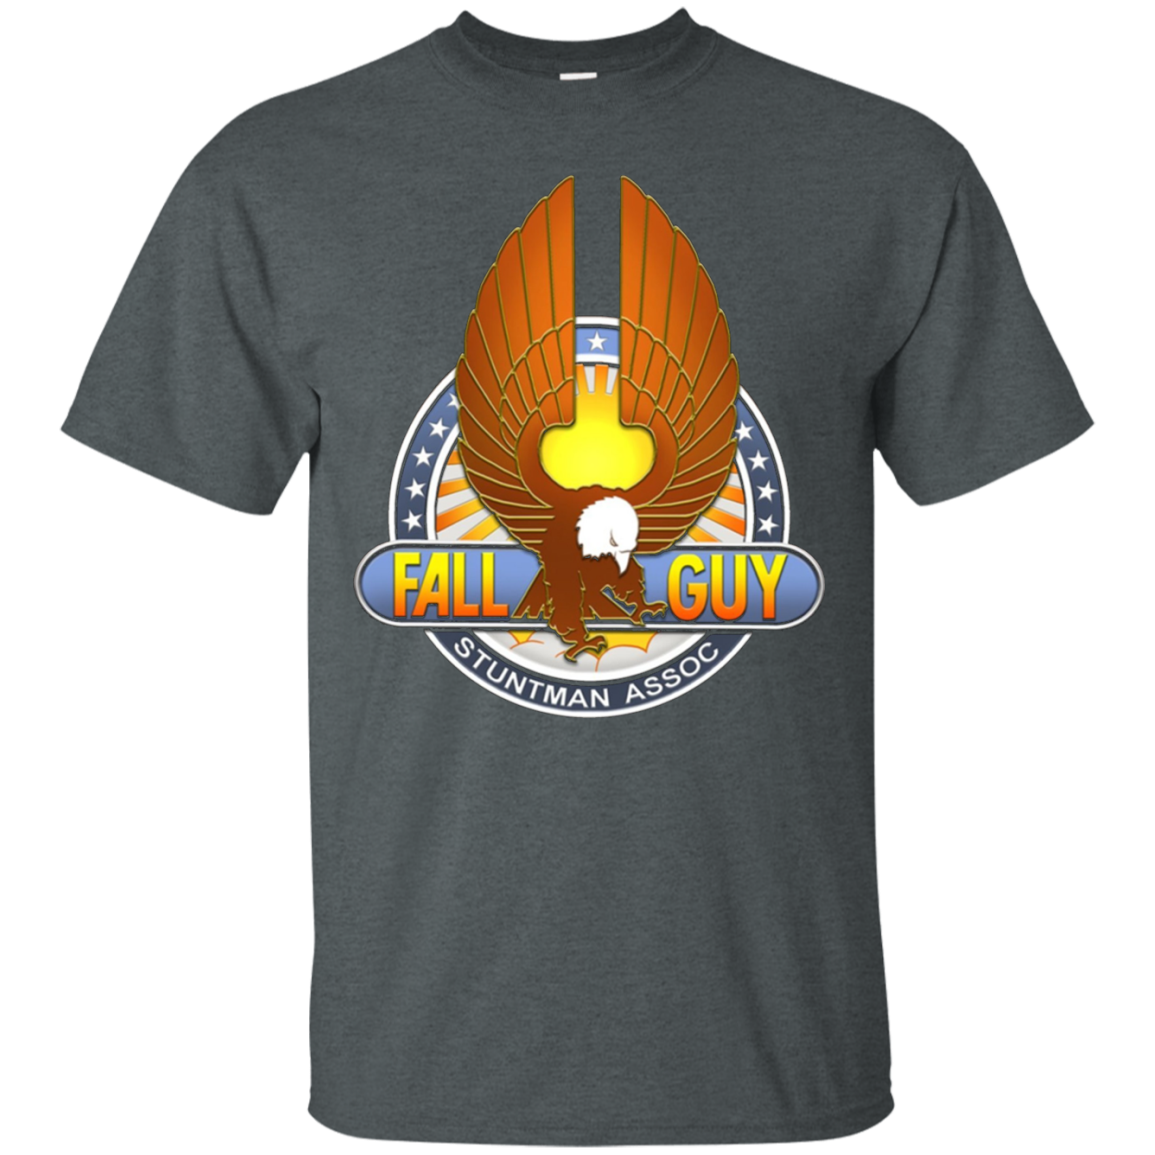 Fall Guy Stuntman Association Tee